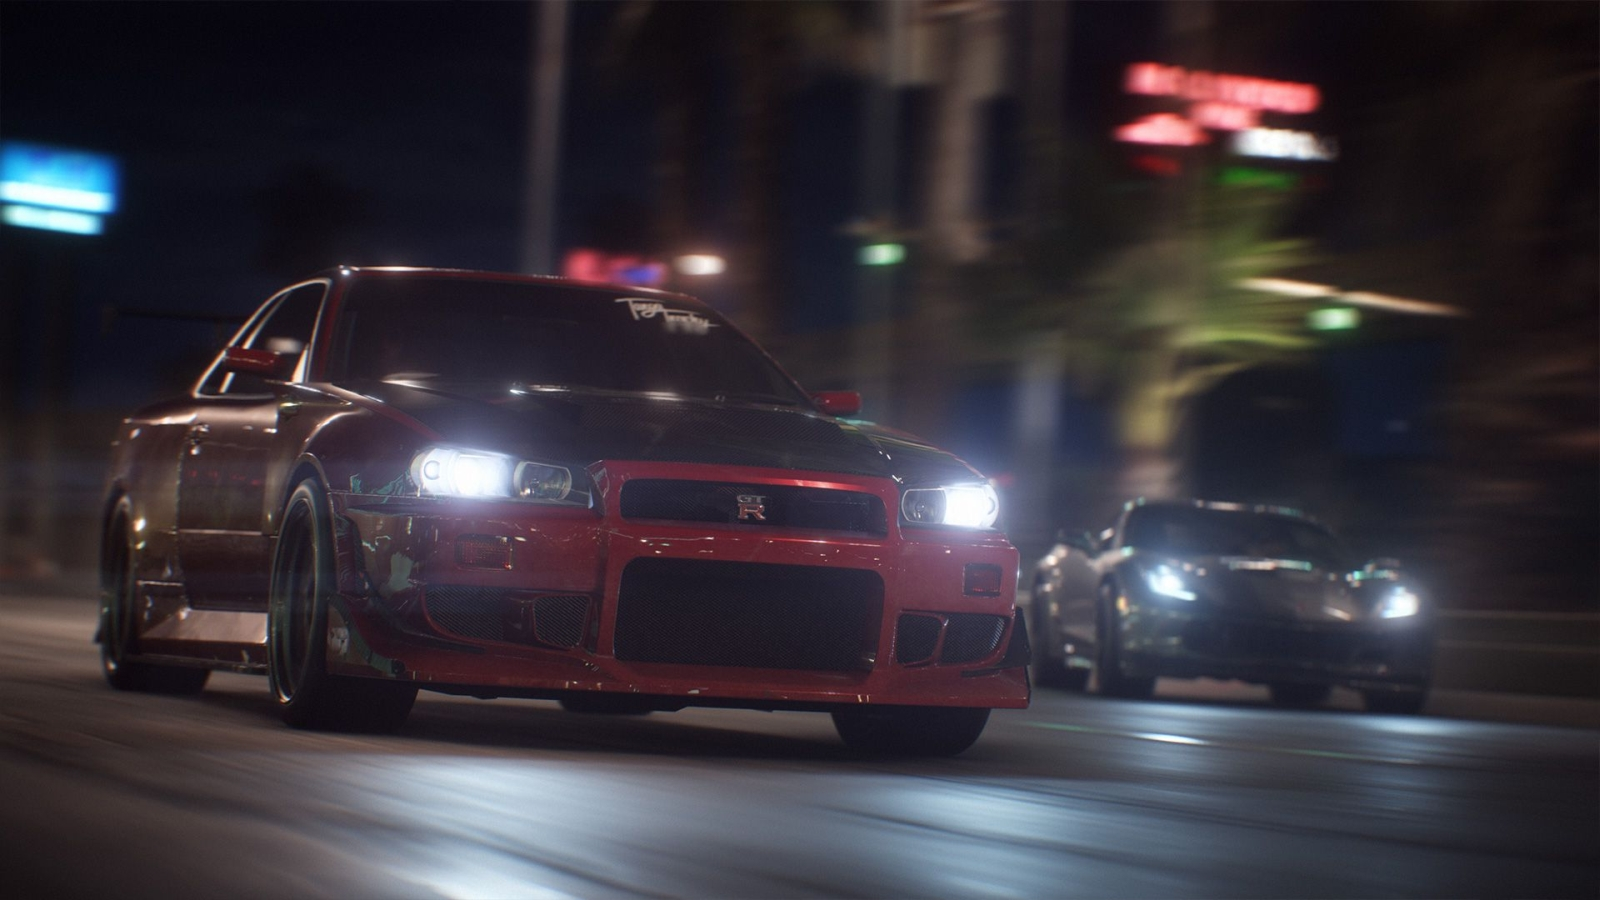 Need for speed has been burning rubber since 1994 with nearly two dozen games which include offshoots into the handheld world and